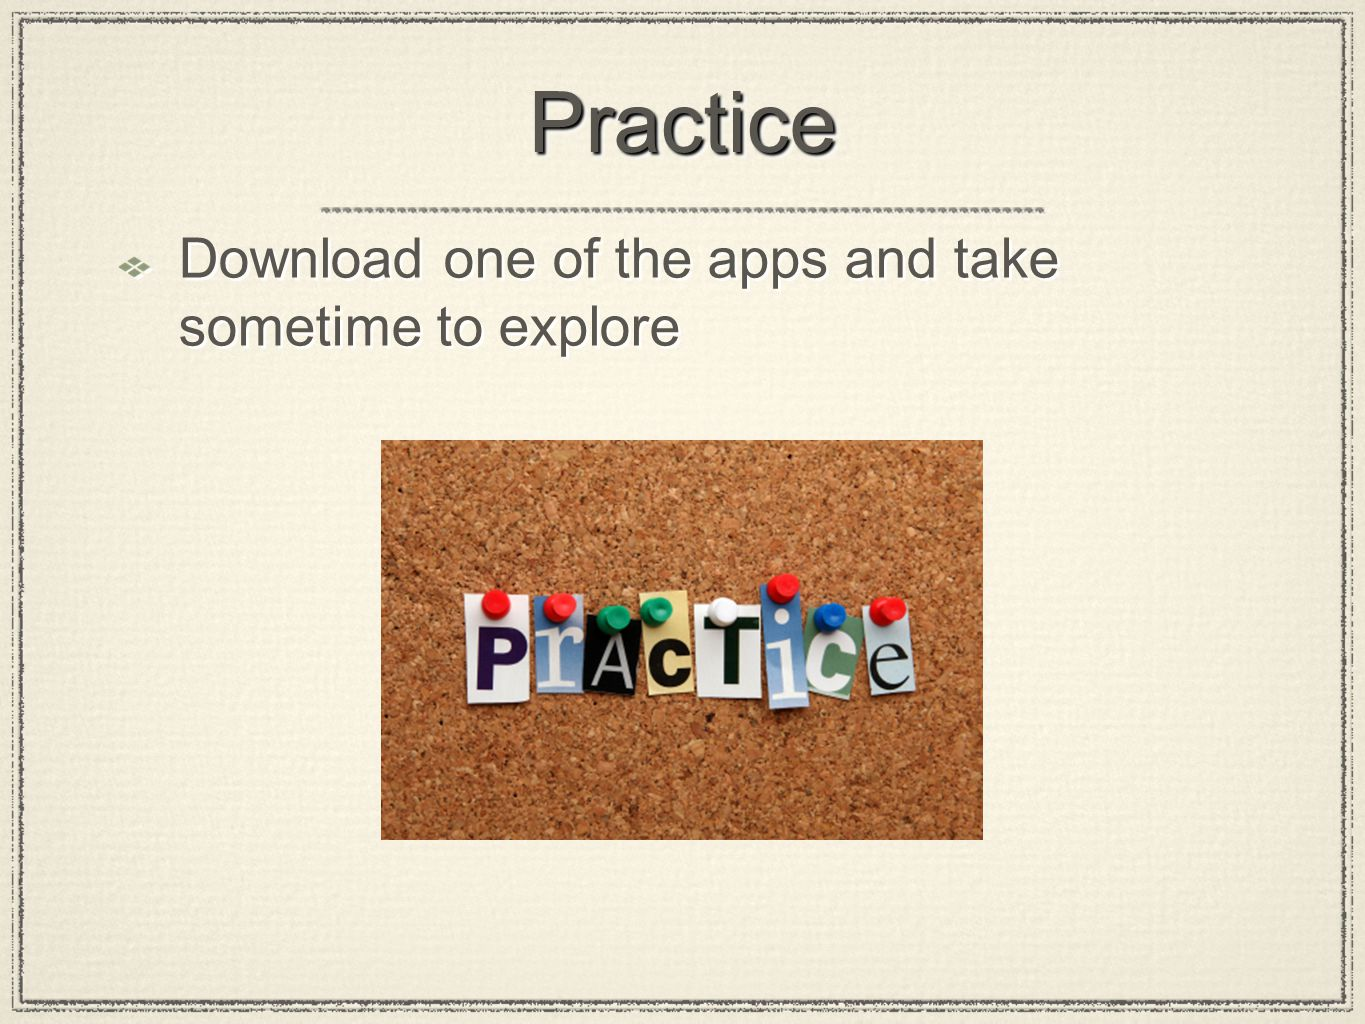 PracticePractice Download one of the apps and take sometime to explore